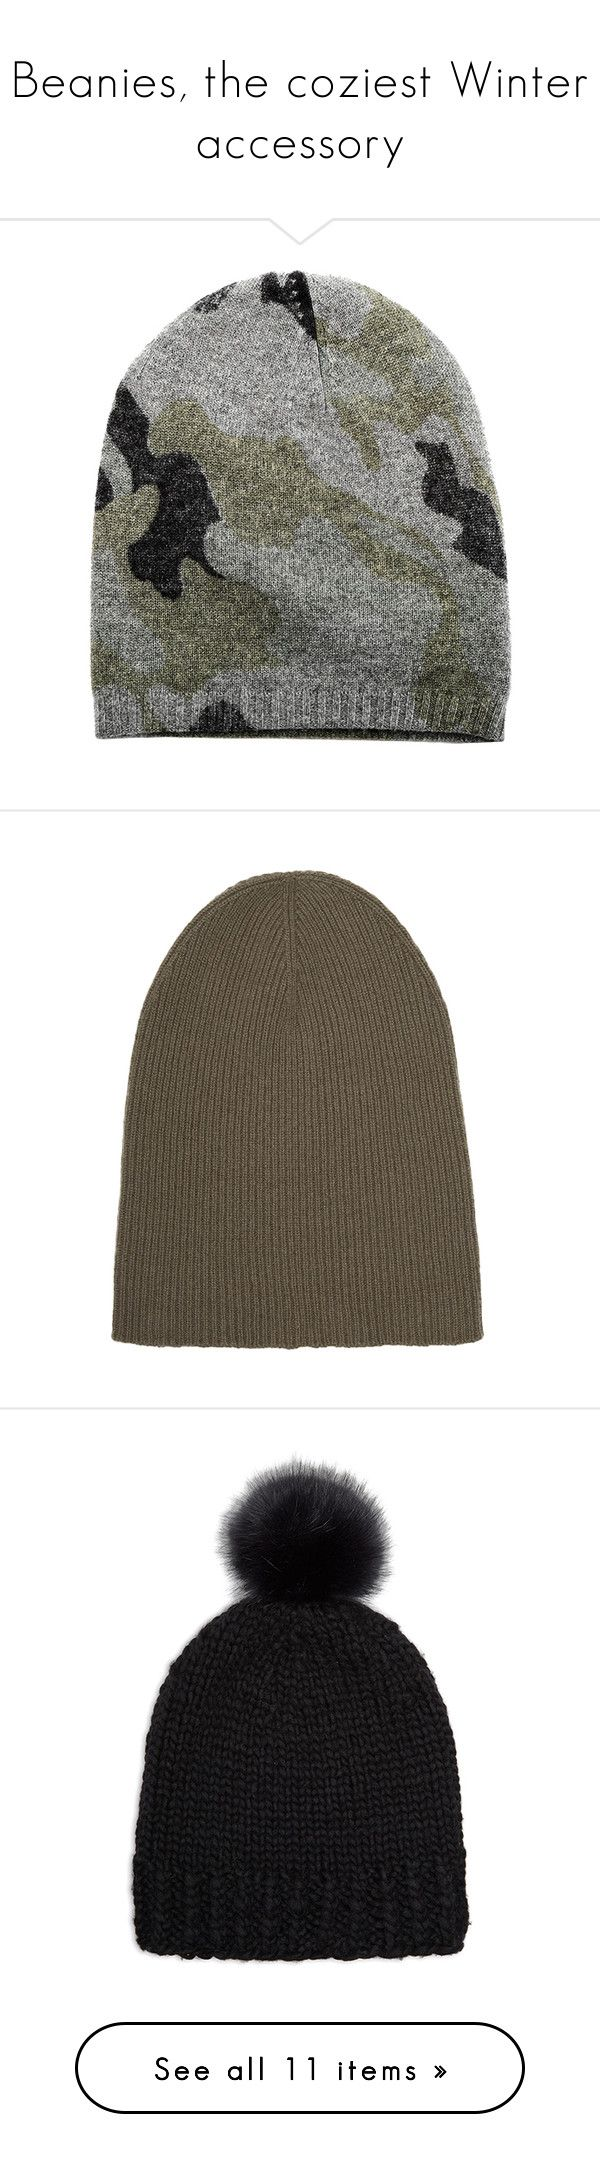 """Beanies, the coziest Winter accessory"" by blueandcream ❤ liked on Polyvore featuring accessories, hats, women, blue beanie hat, beanie hat, camouflage beanie hat, blue beanie, cream hat, beanie cap hat and cashmere beanie hat"